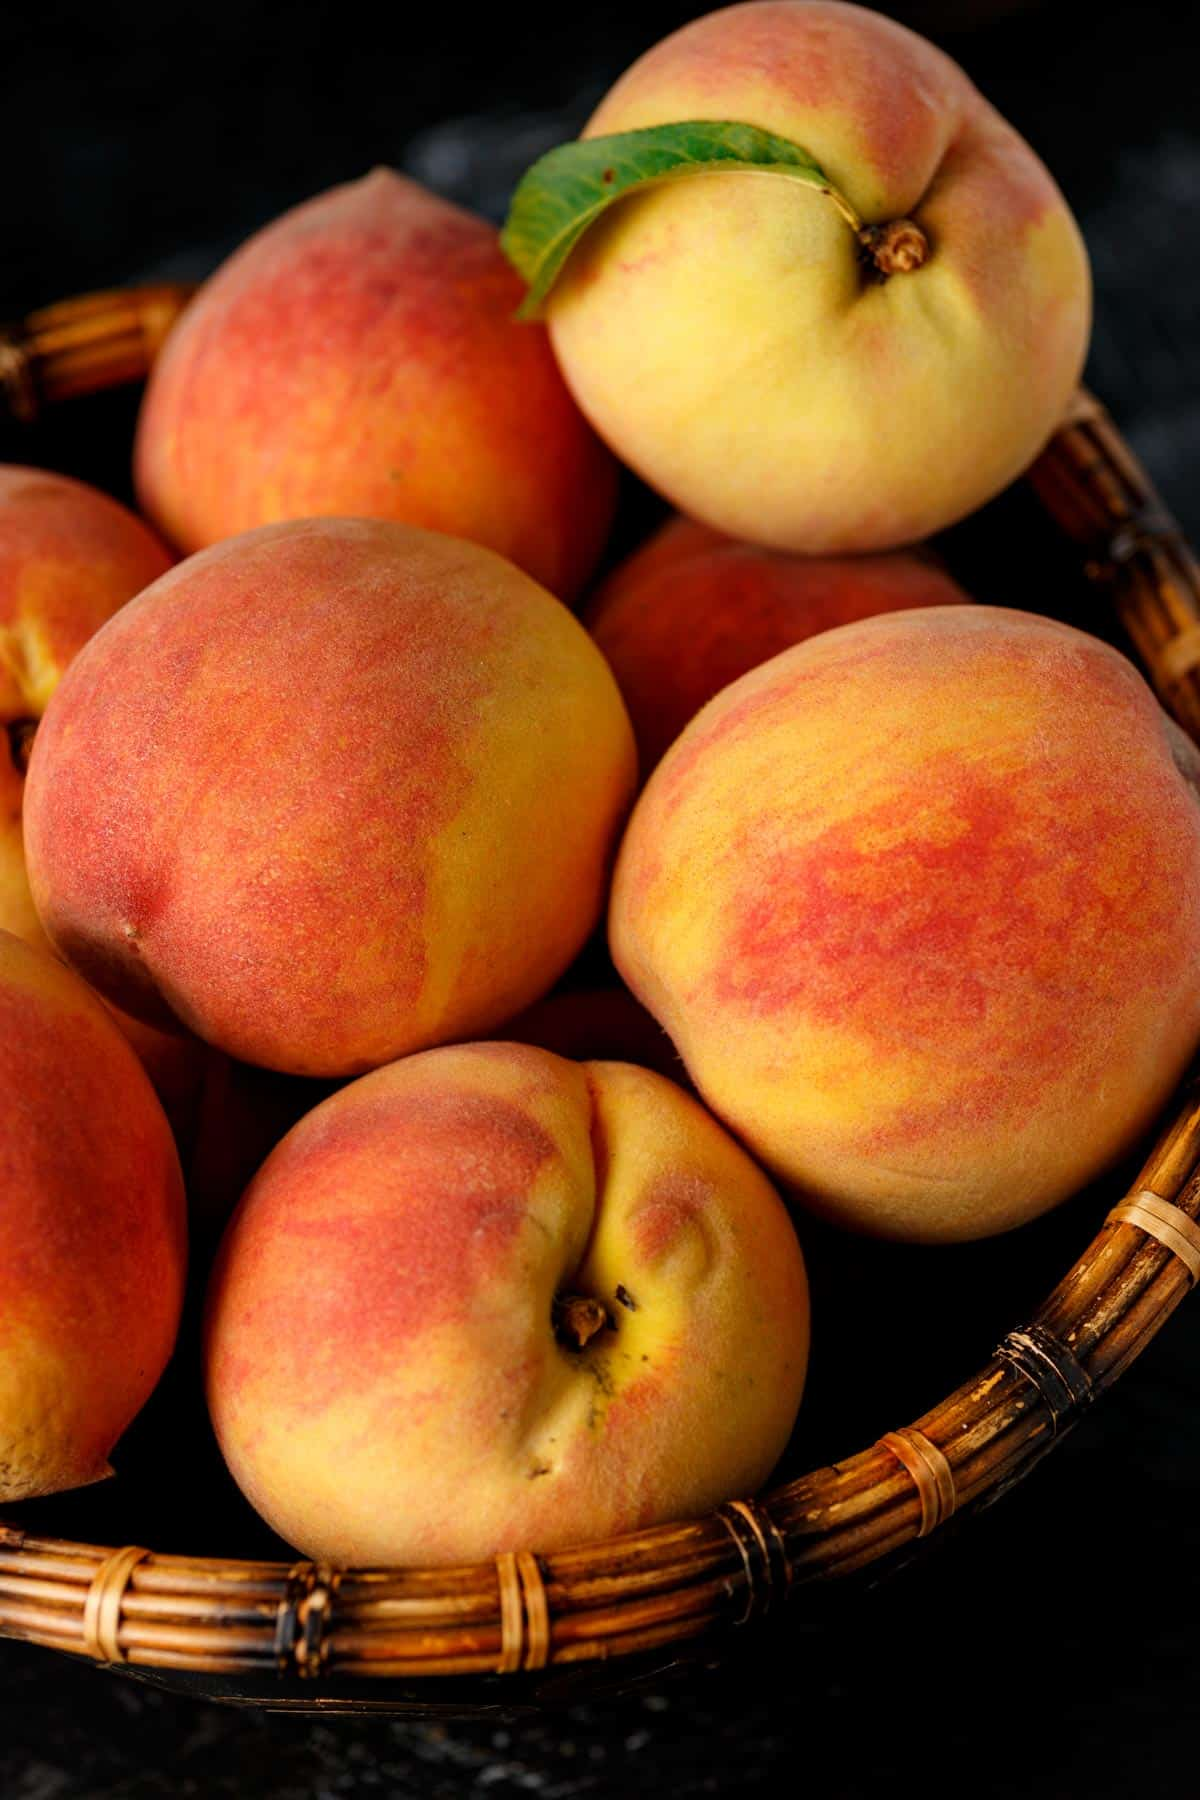 A wooden basket full of peaches